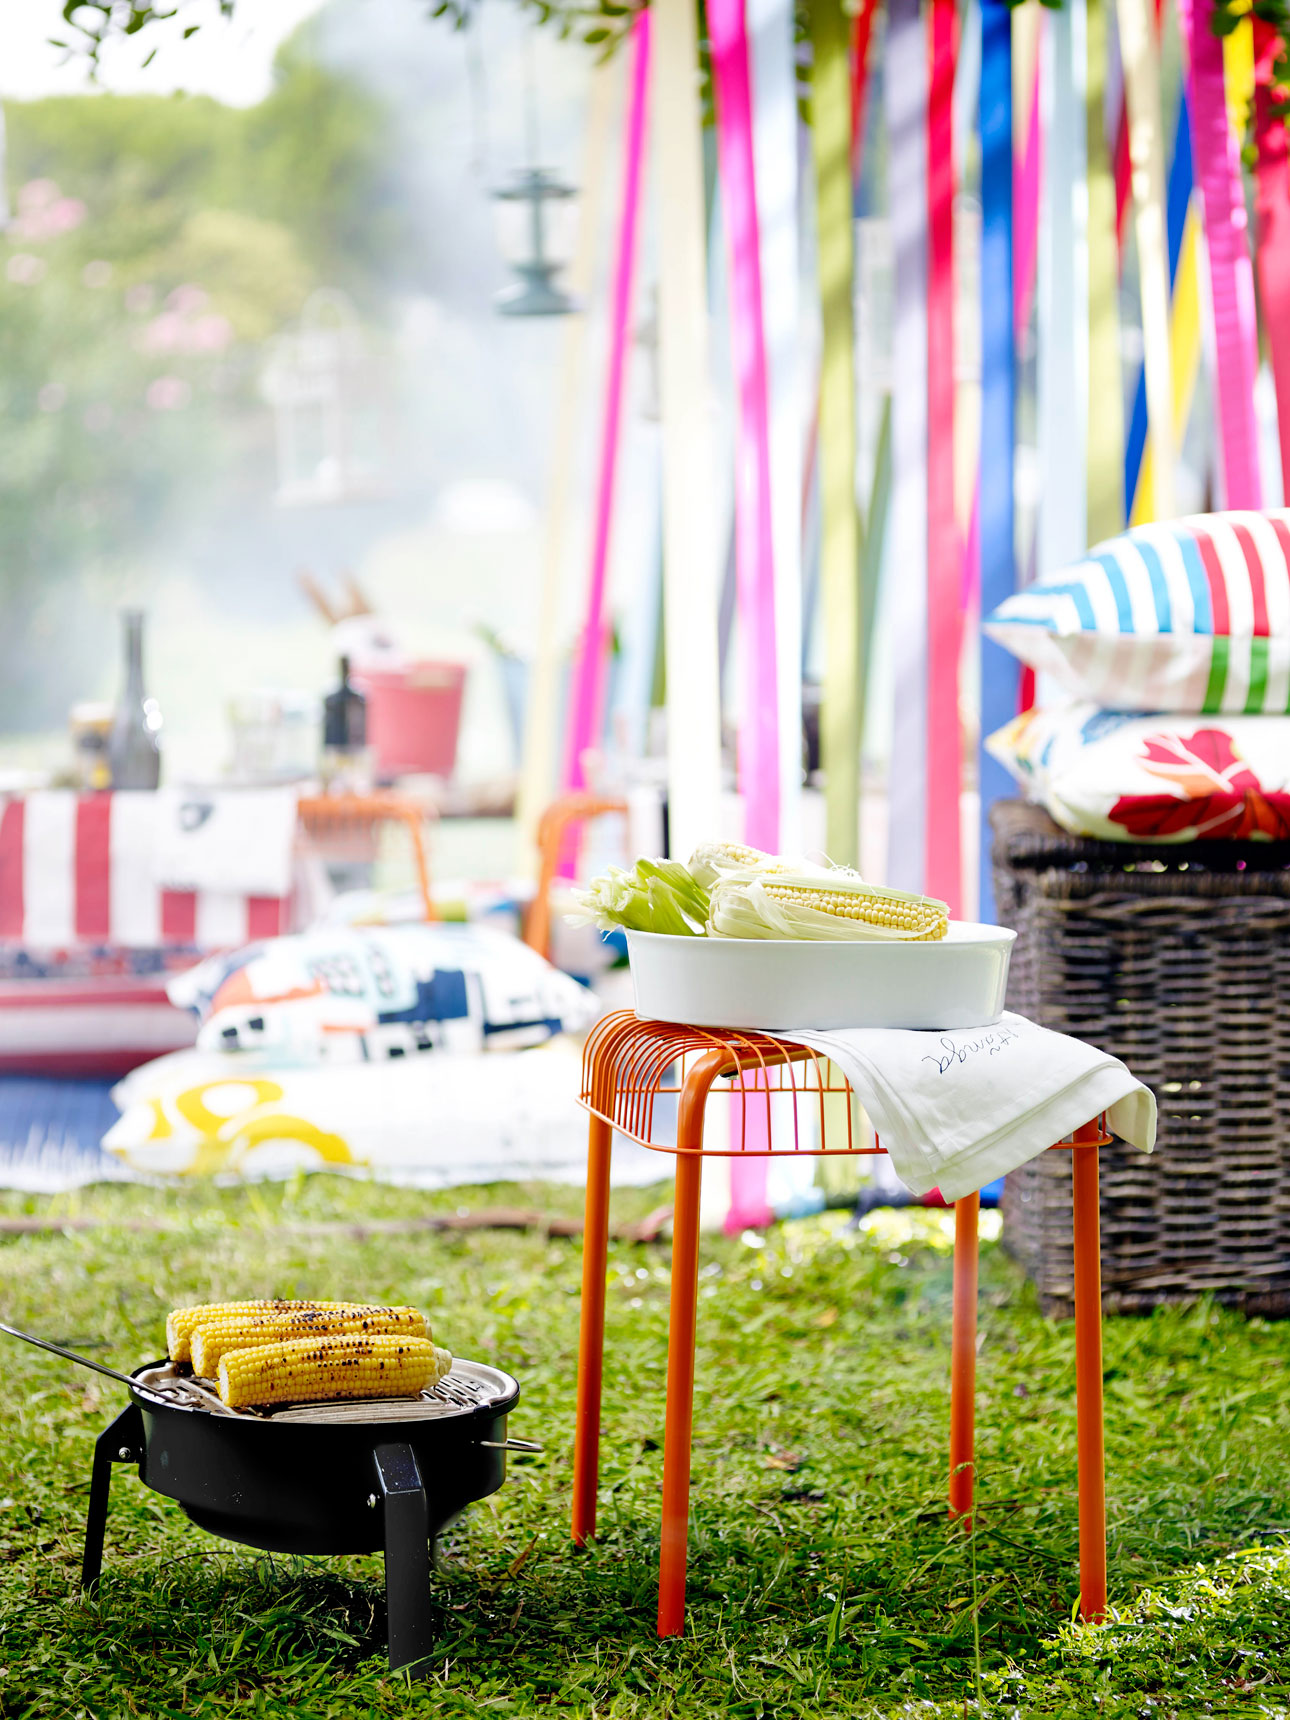 Ikea Sommar 2016 bank barbecue